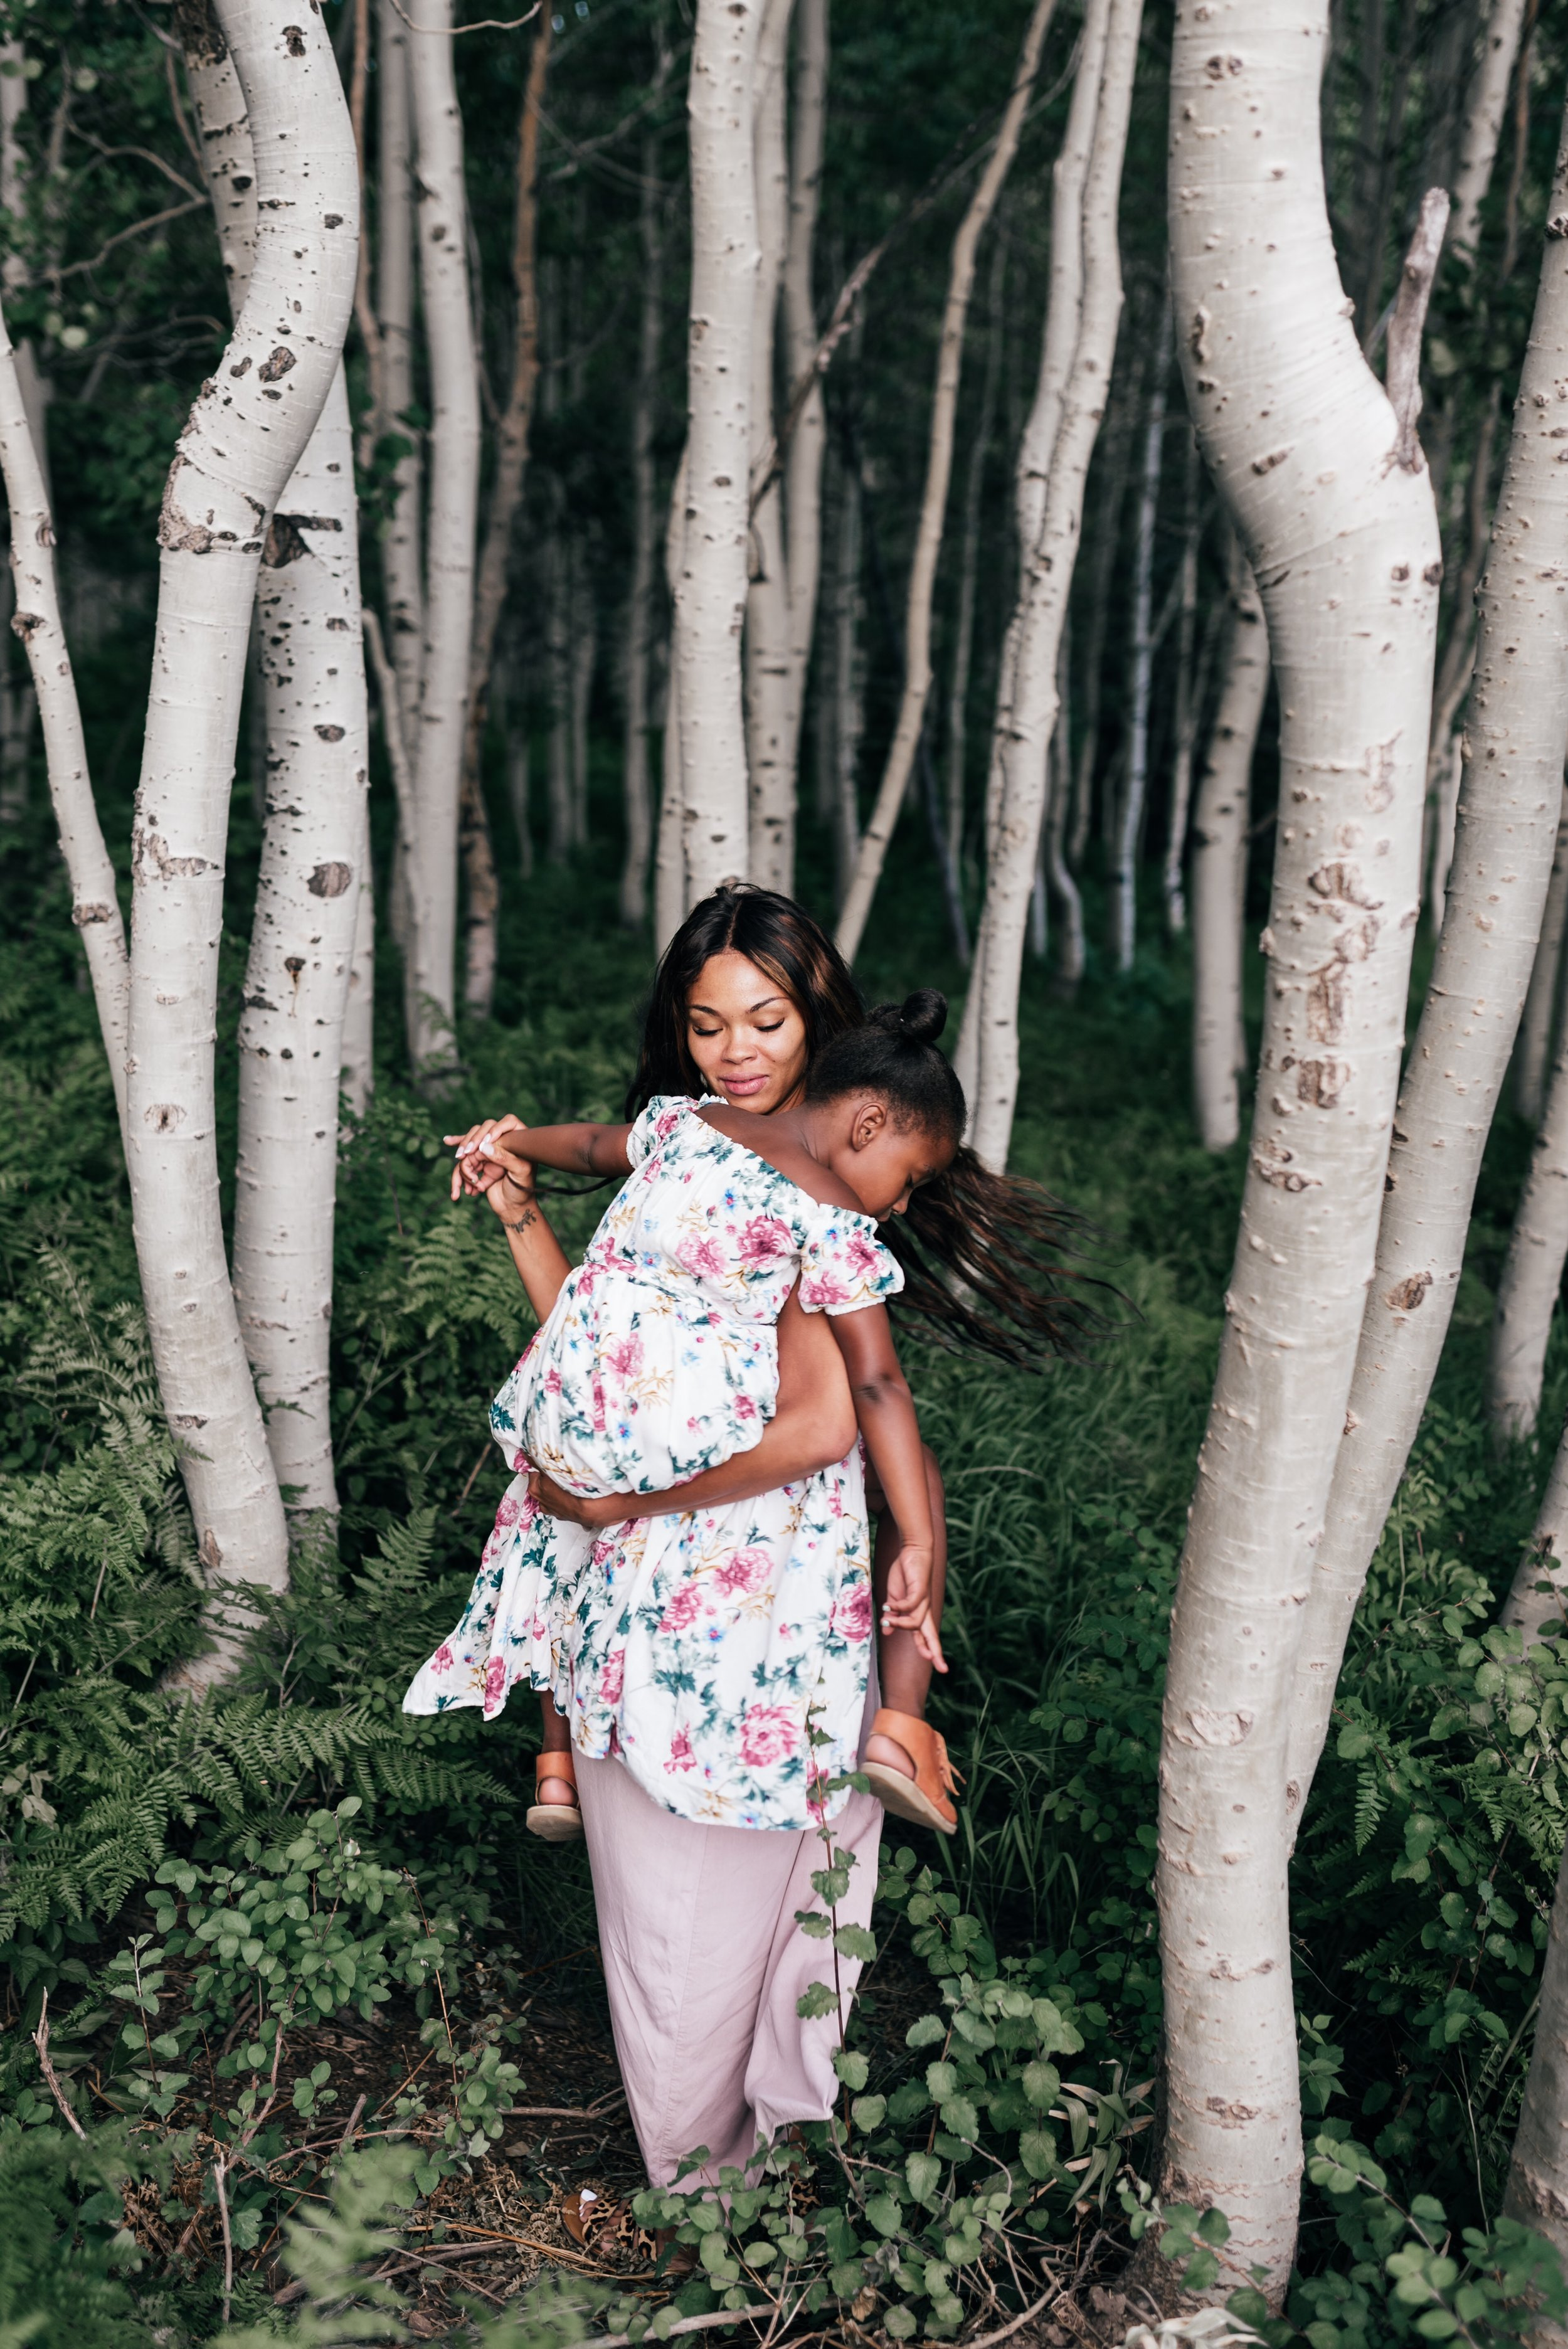 Popular life and style blogger, Mom Crush Monday, shares her top 3 tips on how to stay consistent